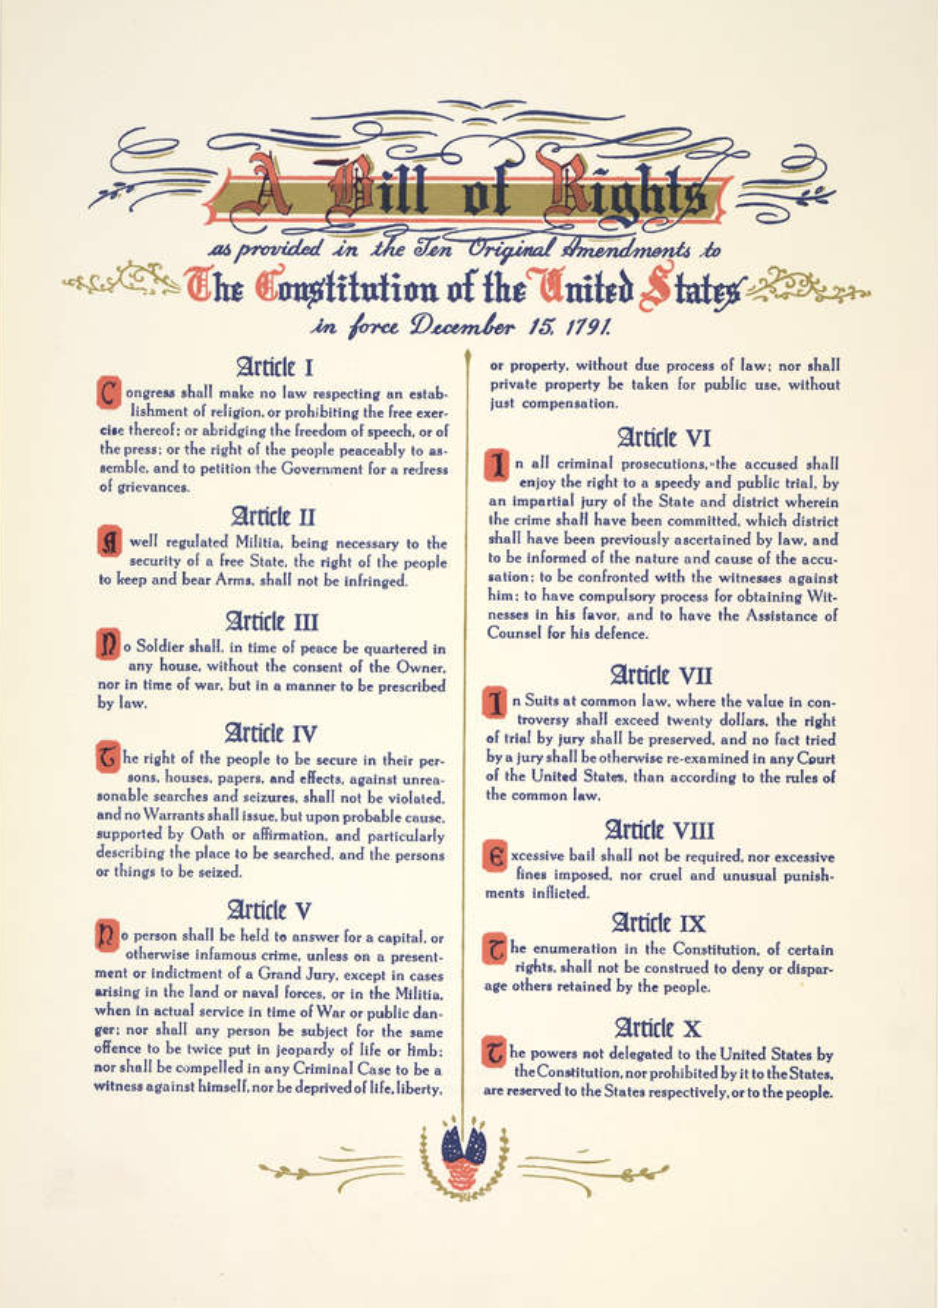 The three-quarters vote was finally achieved when Virginia ratified on December 15, 1791. On March 1, 1792, Secretary of State Thomas Jefferson informed the states that ten of the amendments had been adopted.